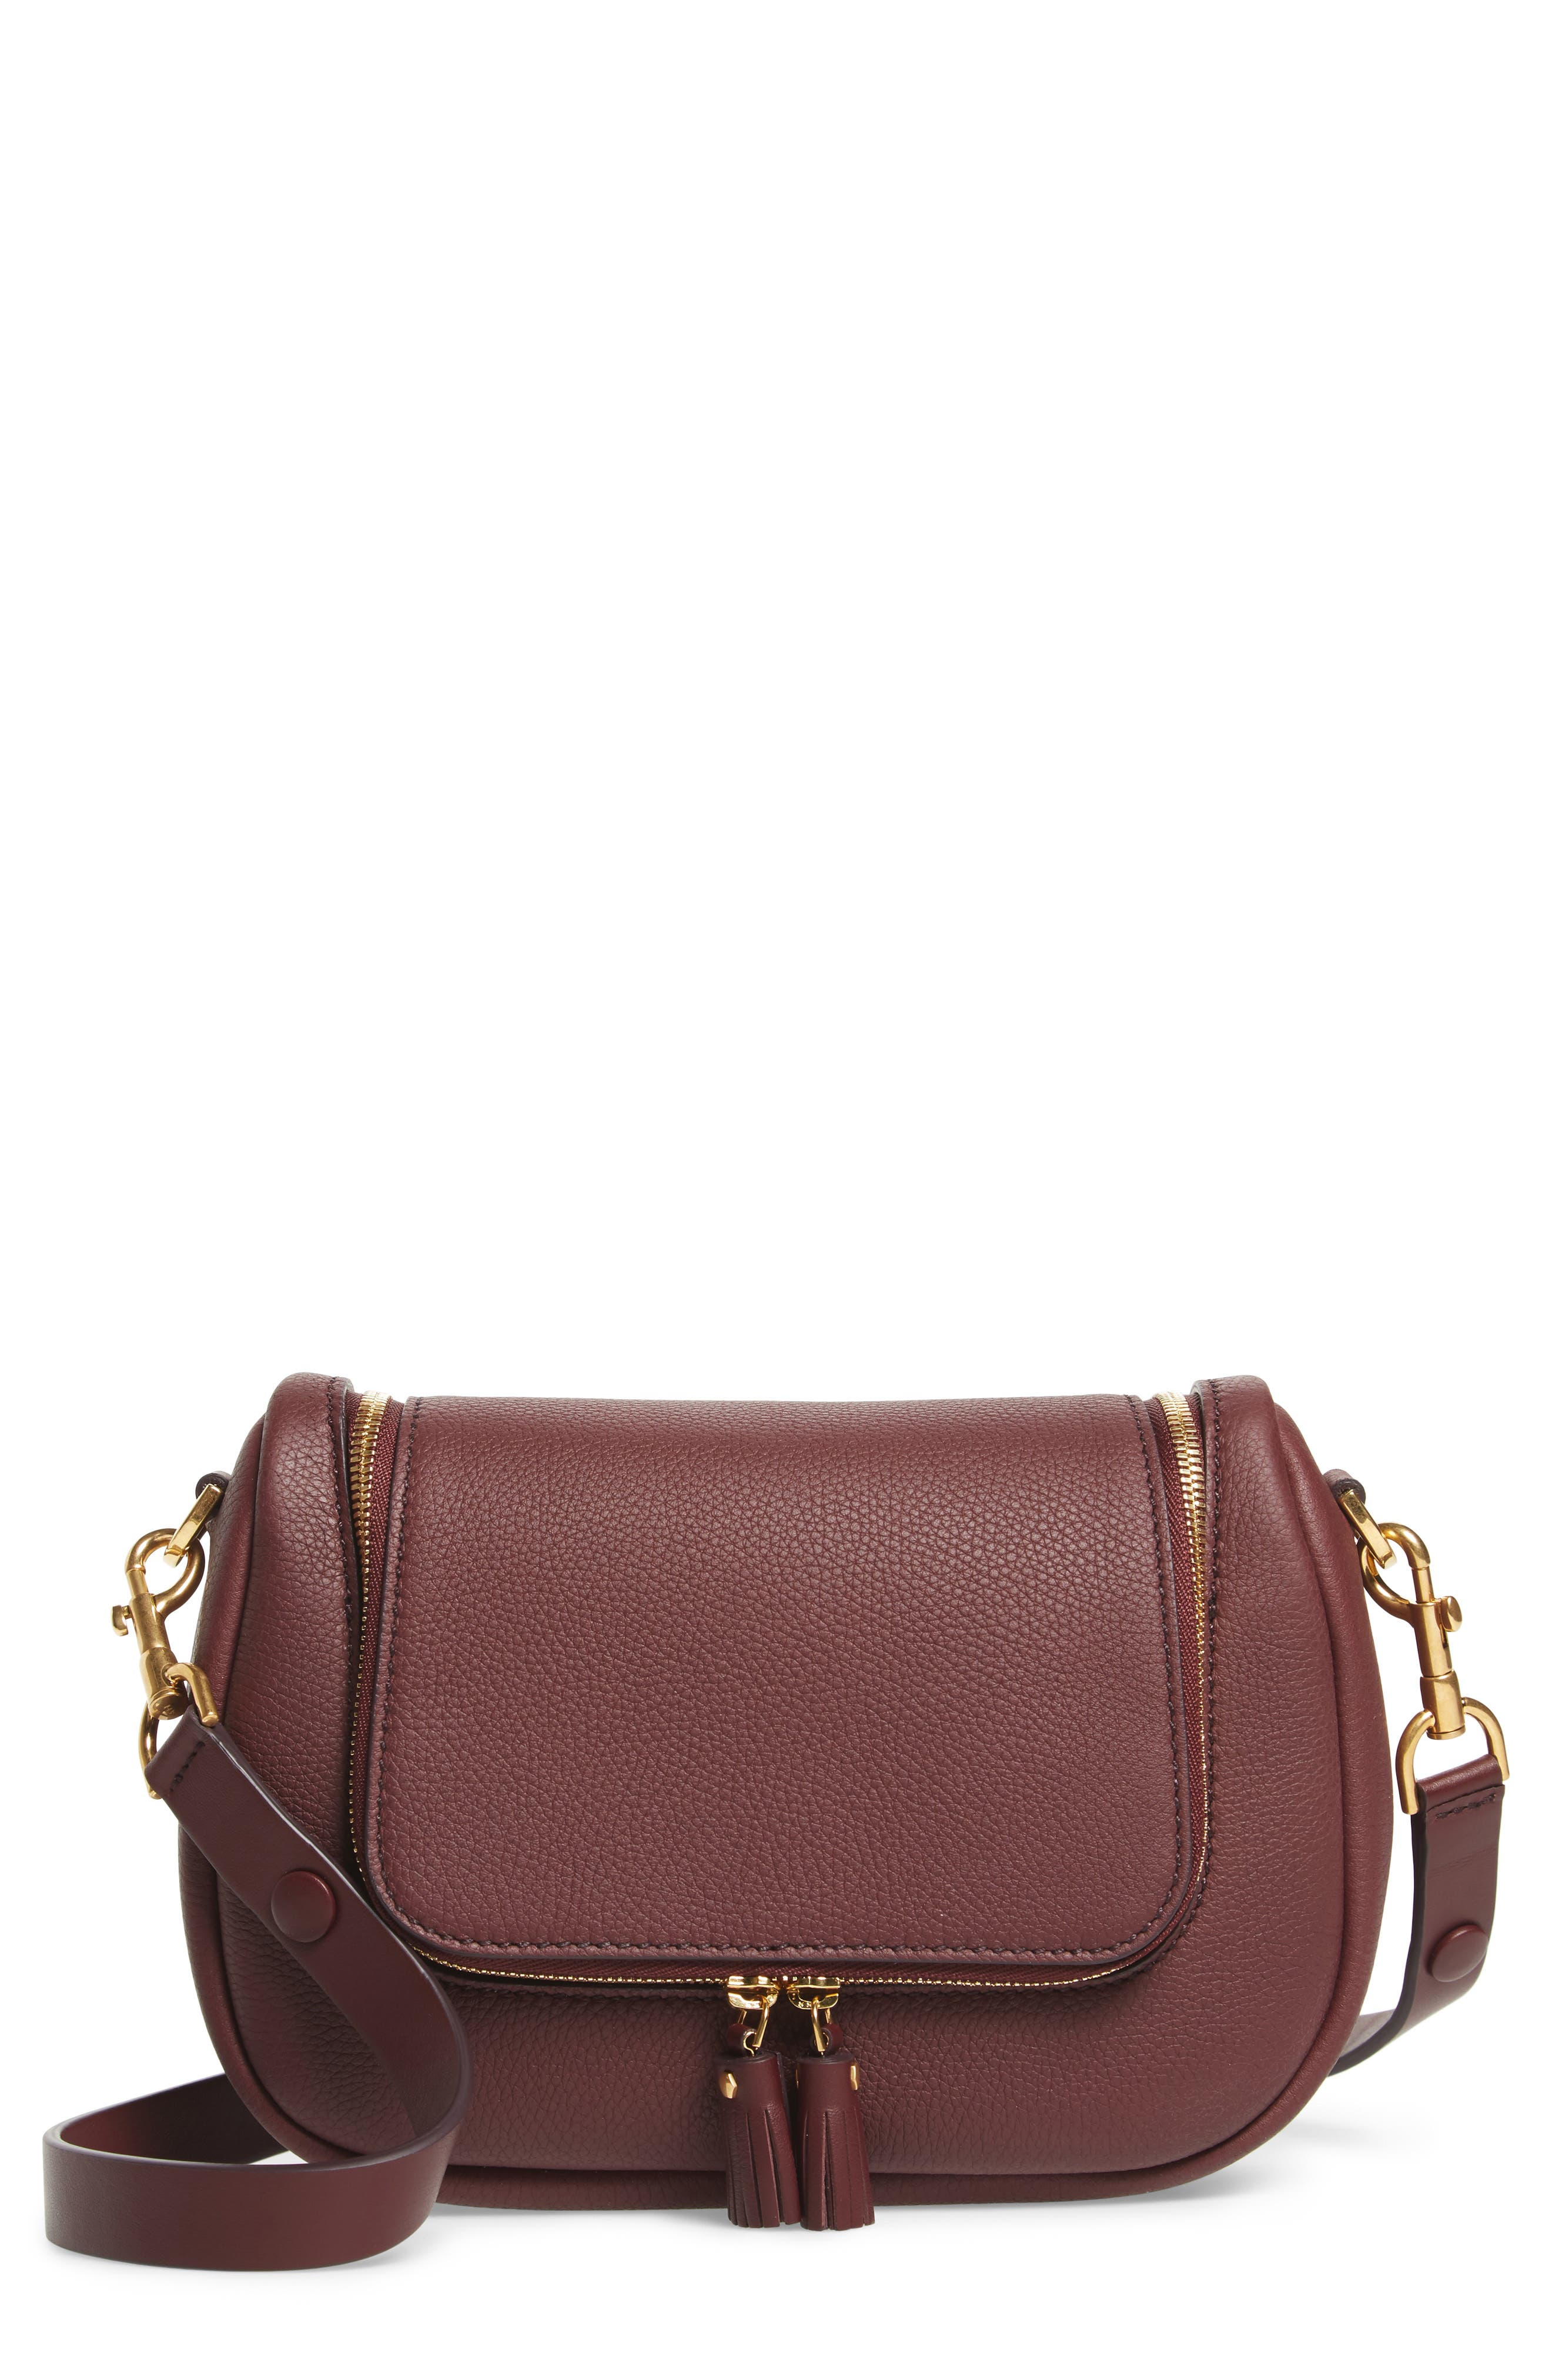 Main Image - Anya Hindmarch Small Vere Leather Crossbody Satchel